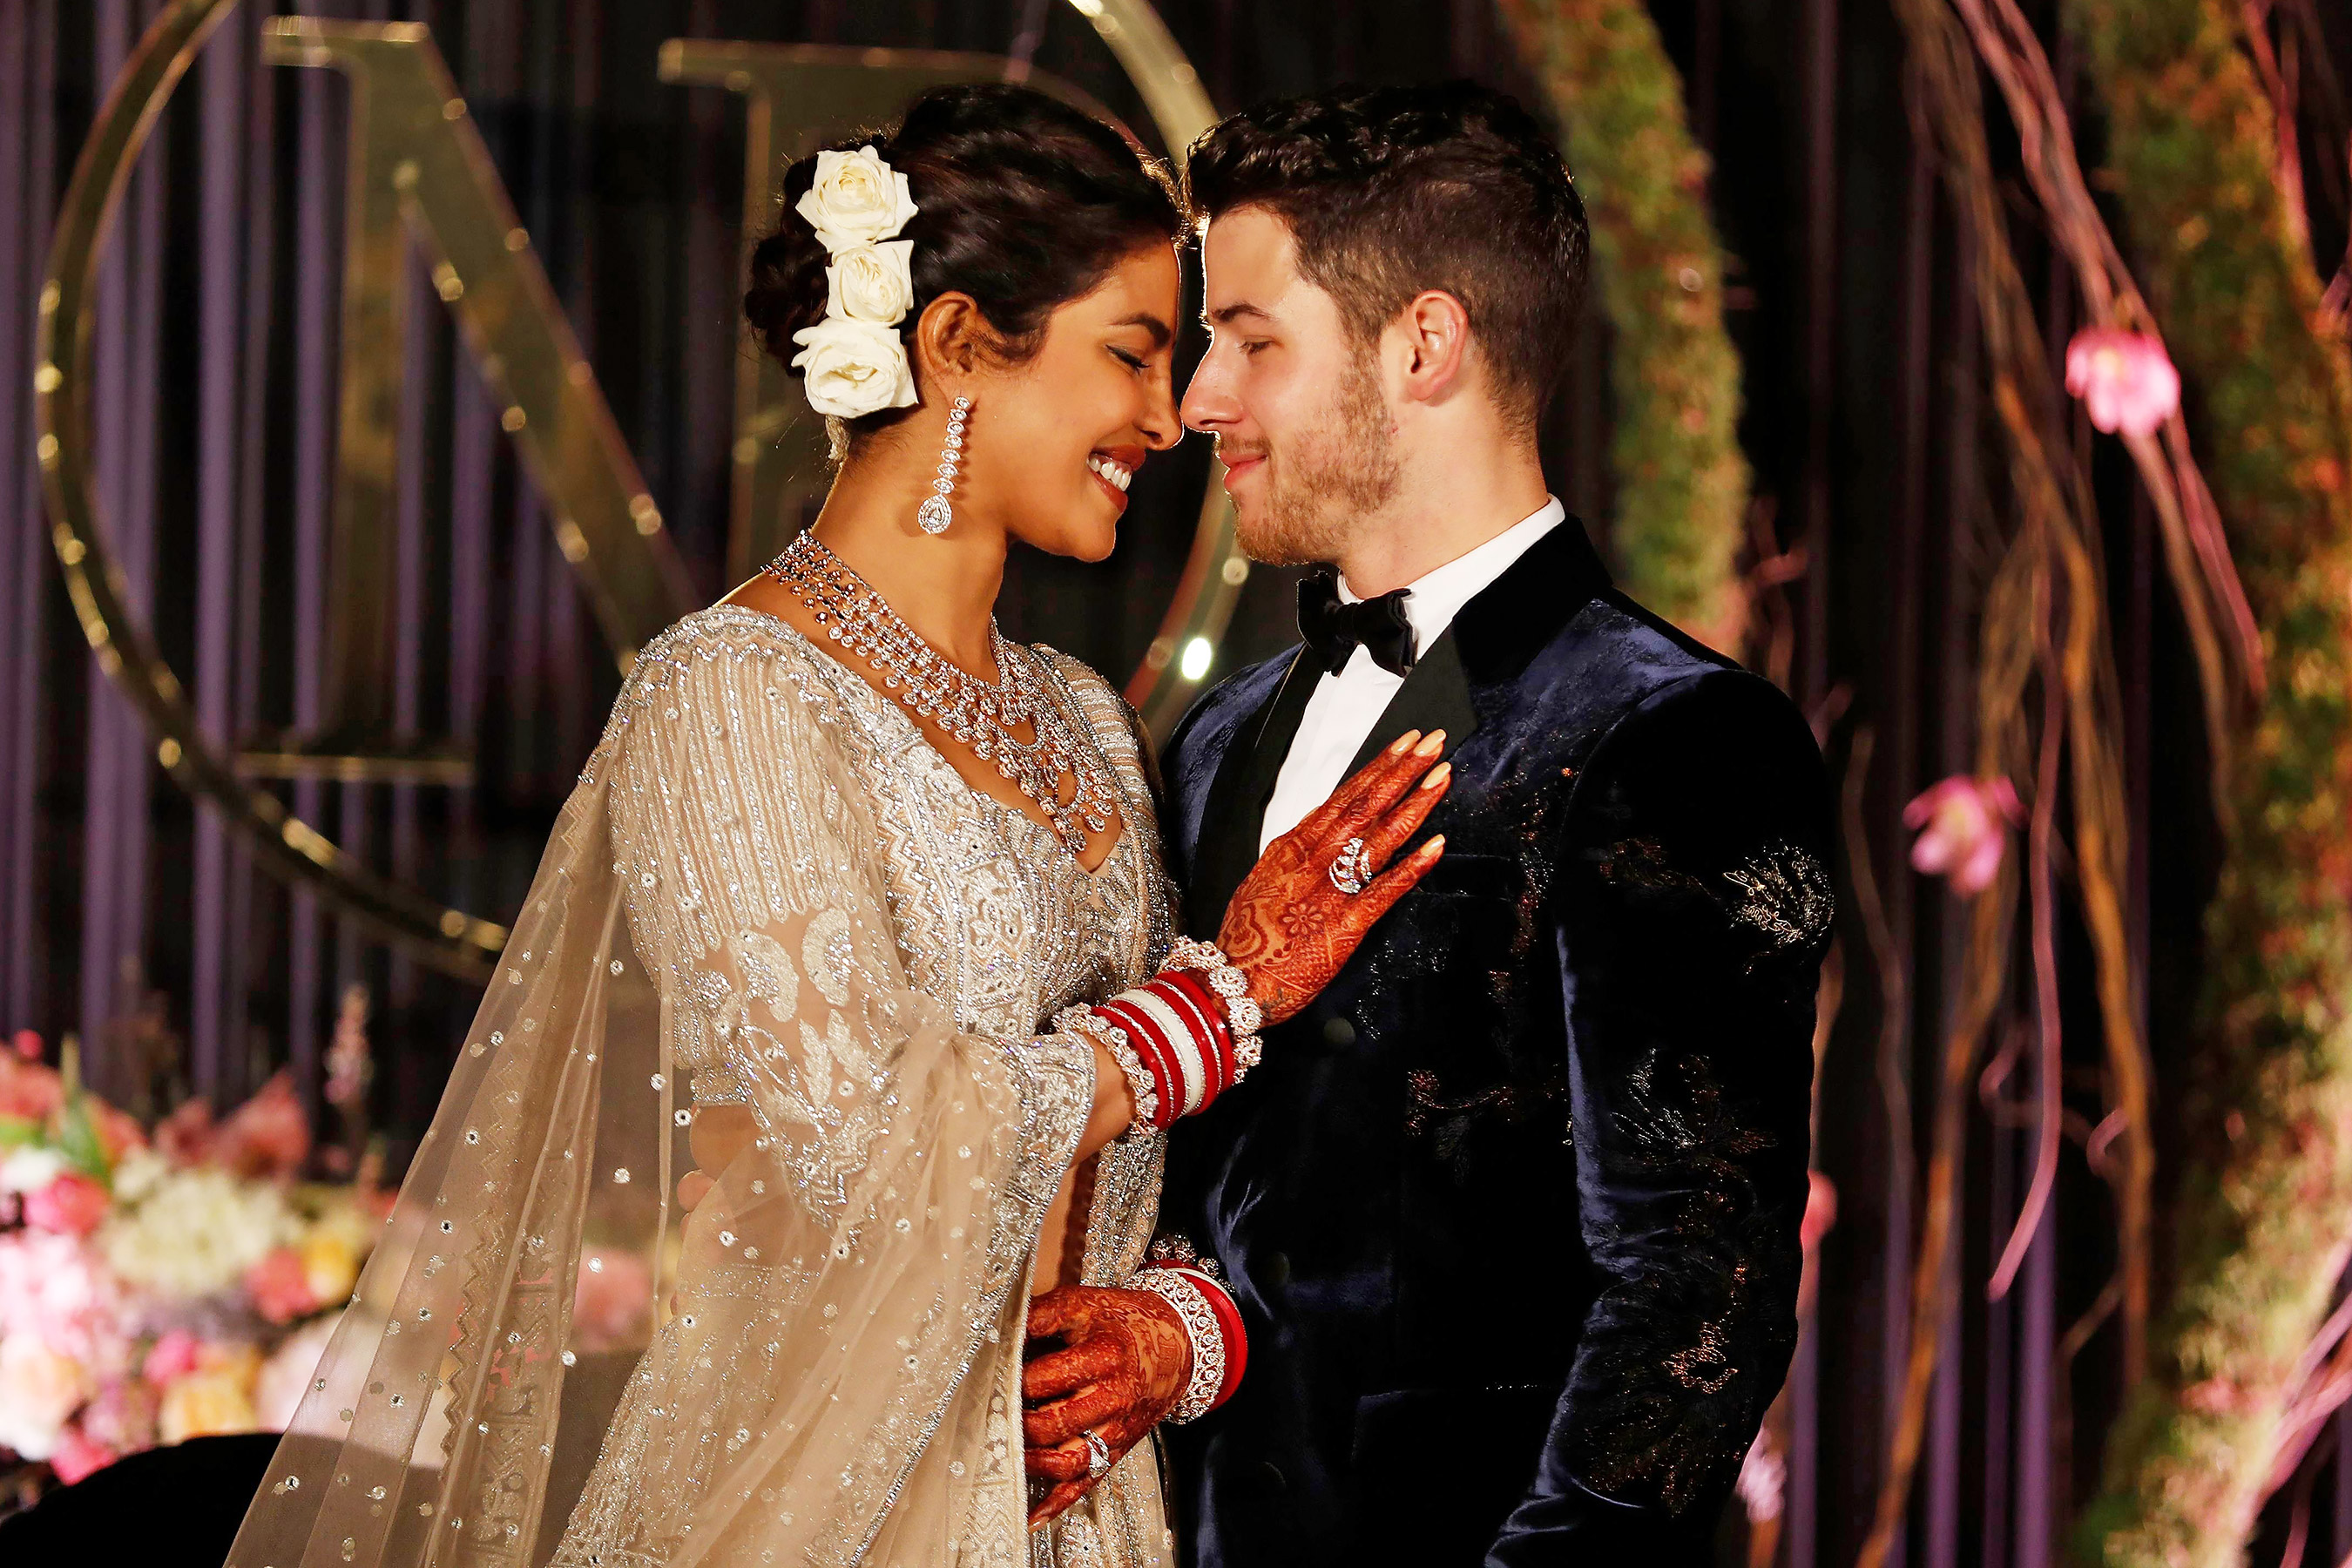 Honeymoon and Babies! Nick Jonas and Priyanka Chopra Reveal Their Post-Wedding Plans